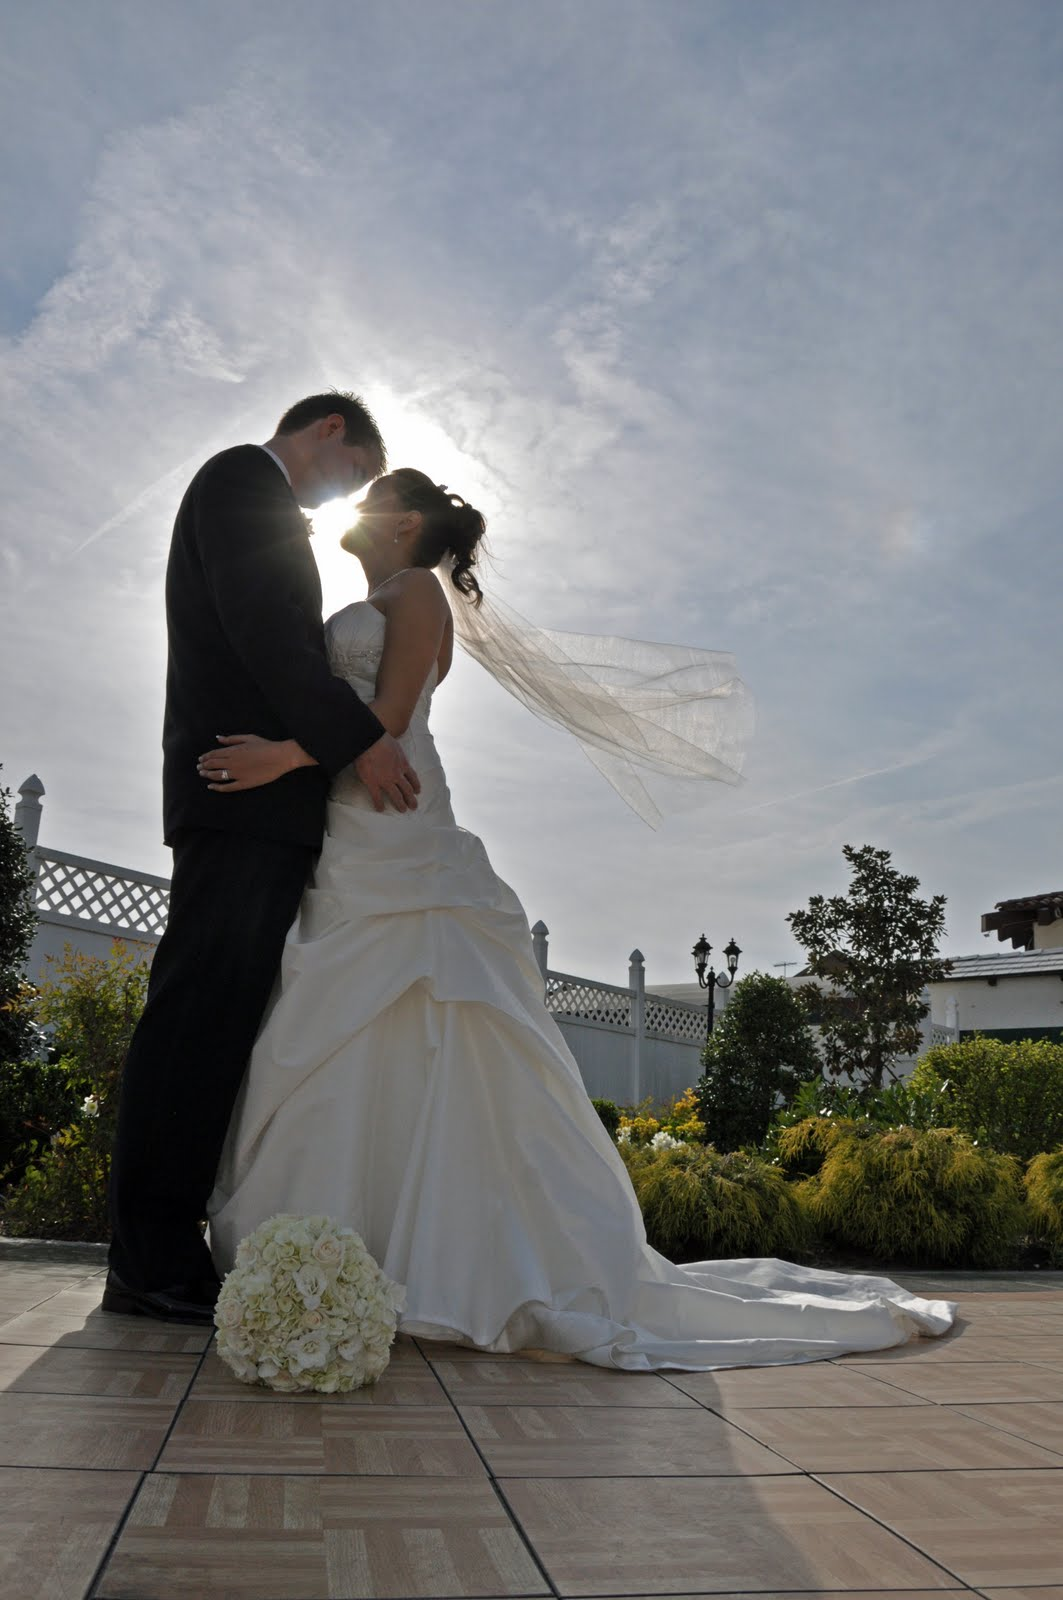 Issa Michel Photography; Wedding Photographers In Fairfax